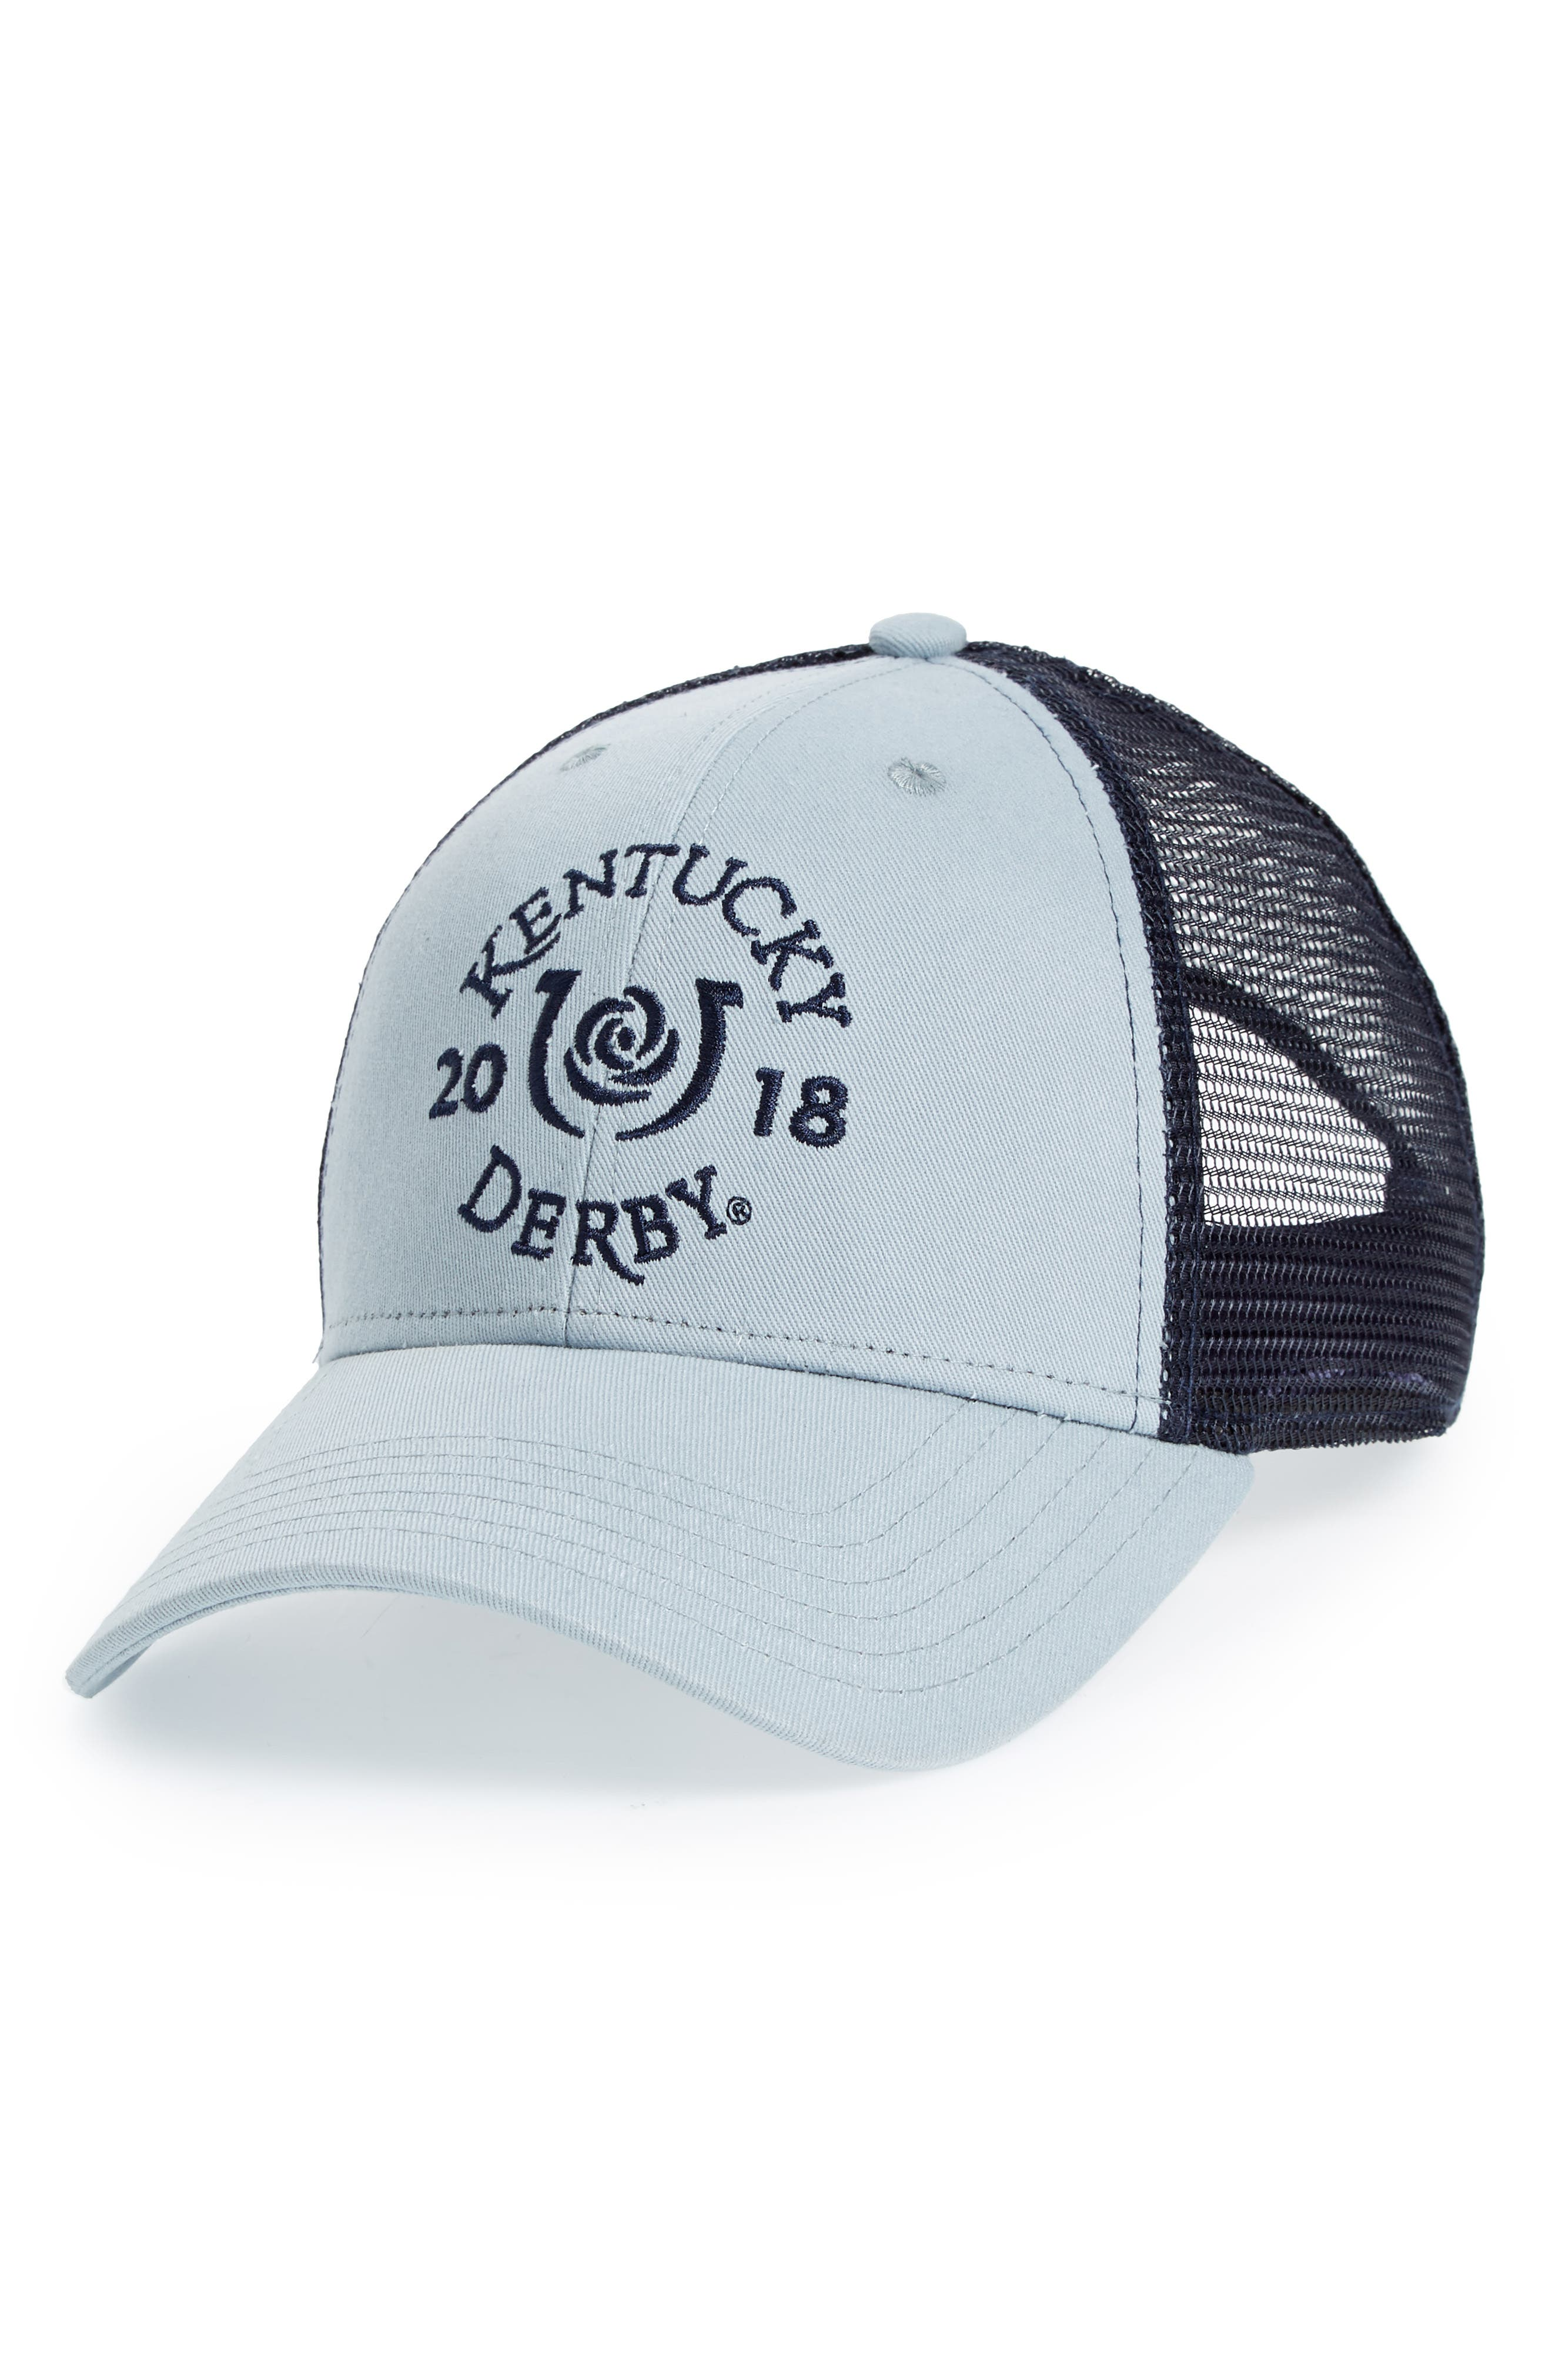 2018 Kentucky Derby<sup>®</sup> Garland of Roses Ball Cap,                         Main,                         color,